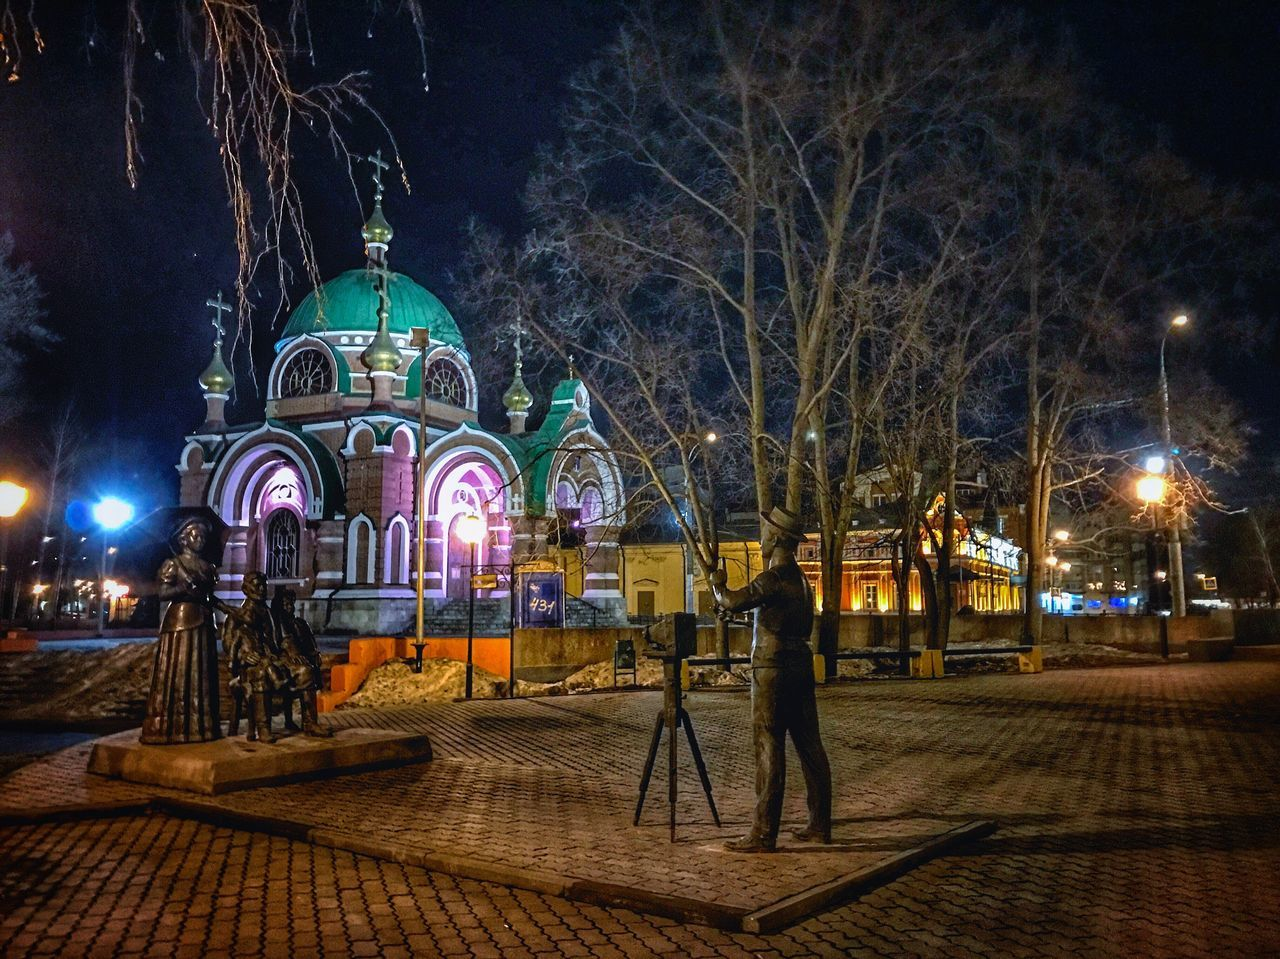 Illuminated Night City Street Light Architecture Travel Destinations Building Exterior Tree Celebration Outdoors липецк Lipetsk City Life Religion Christmas People Sky Adults Only Adult